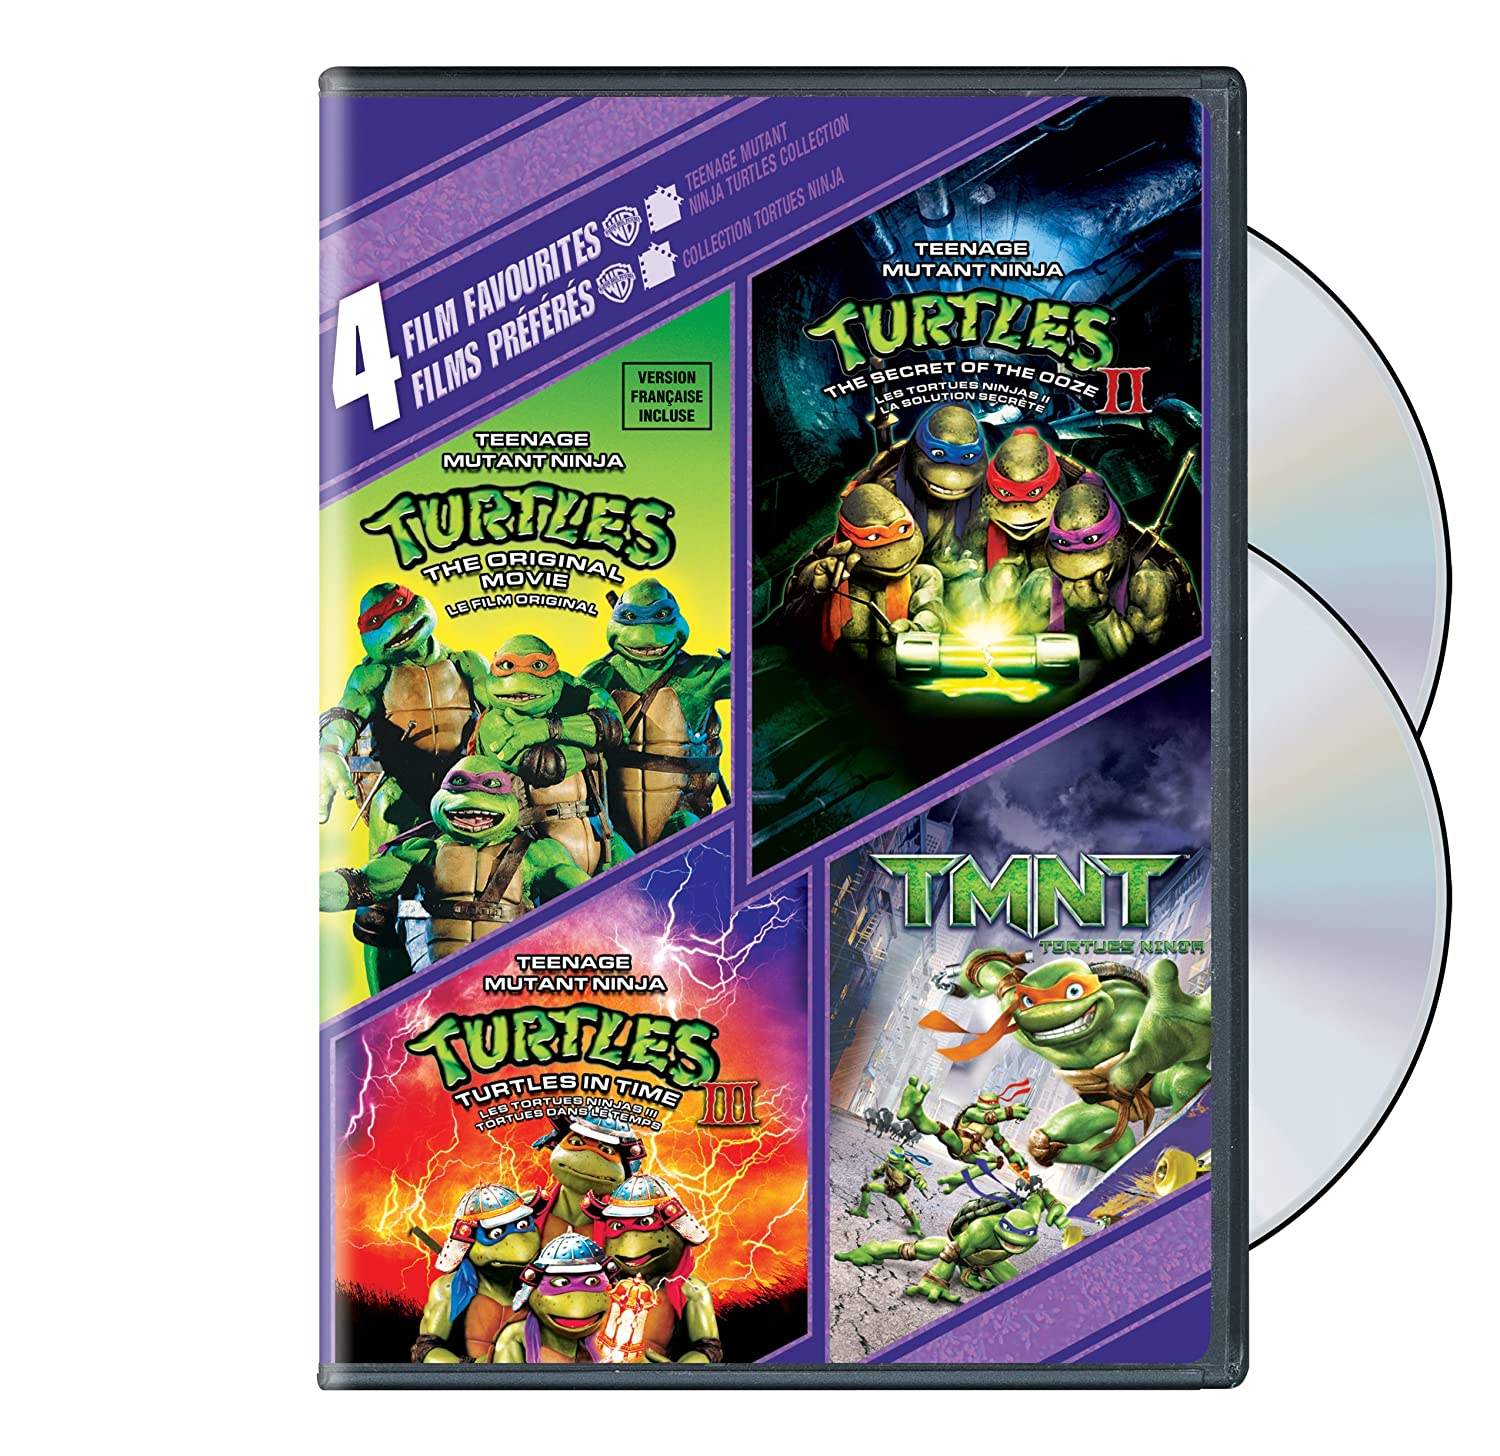 Amazon.com: Teenage Mutant Ninja Turtles: The Original Movie ...